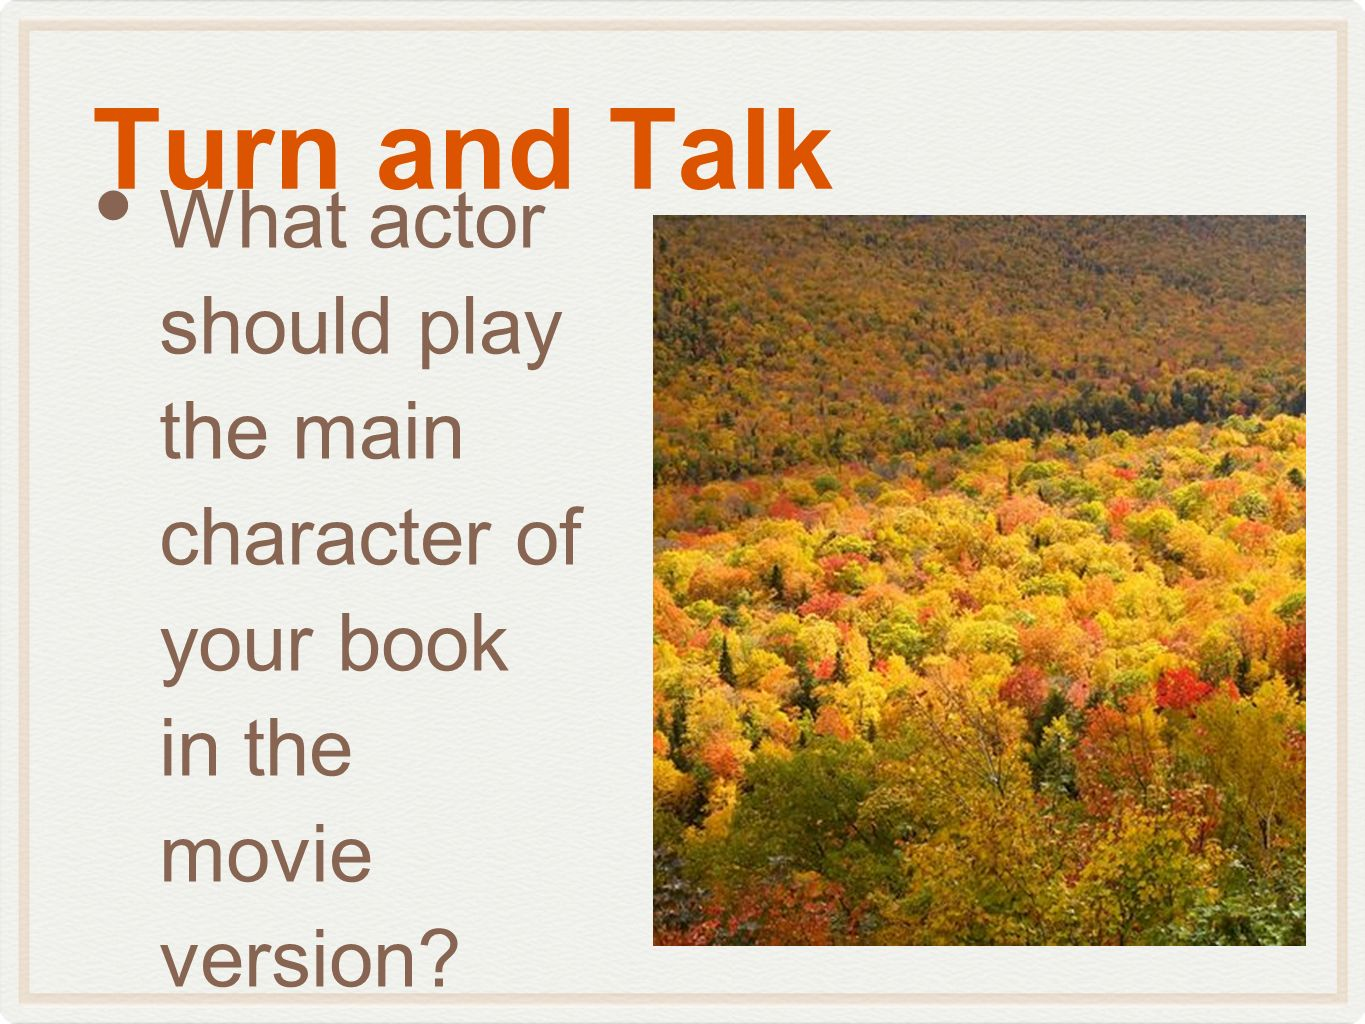 Turn and Talk What actor should play the main character of your book in the movie version?